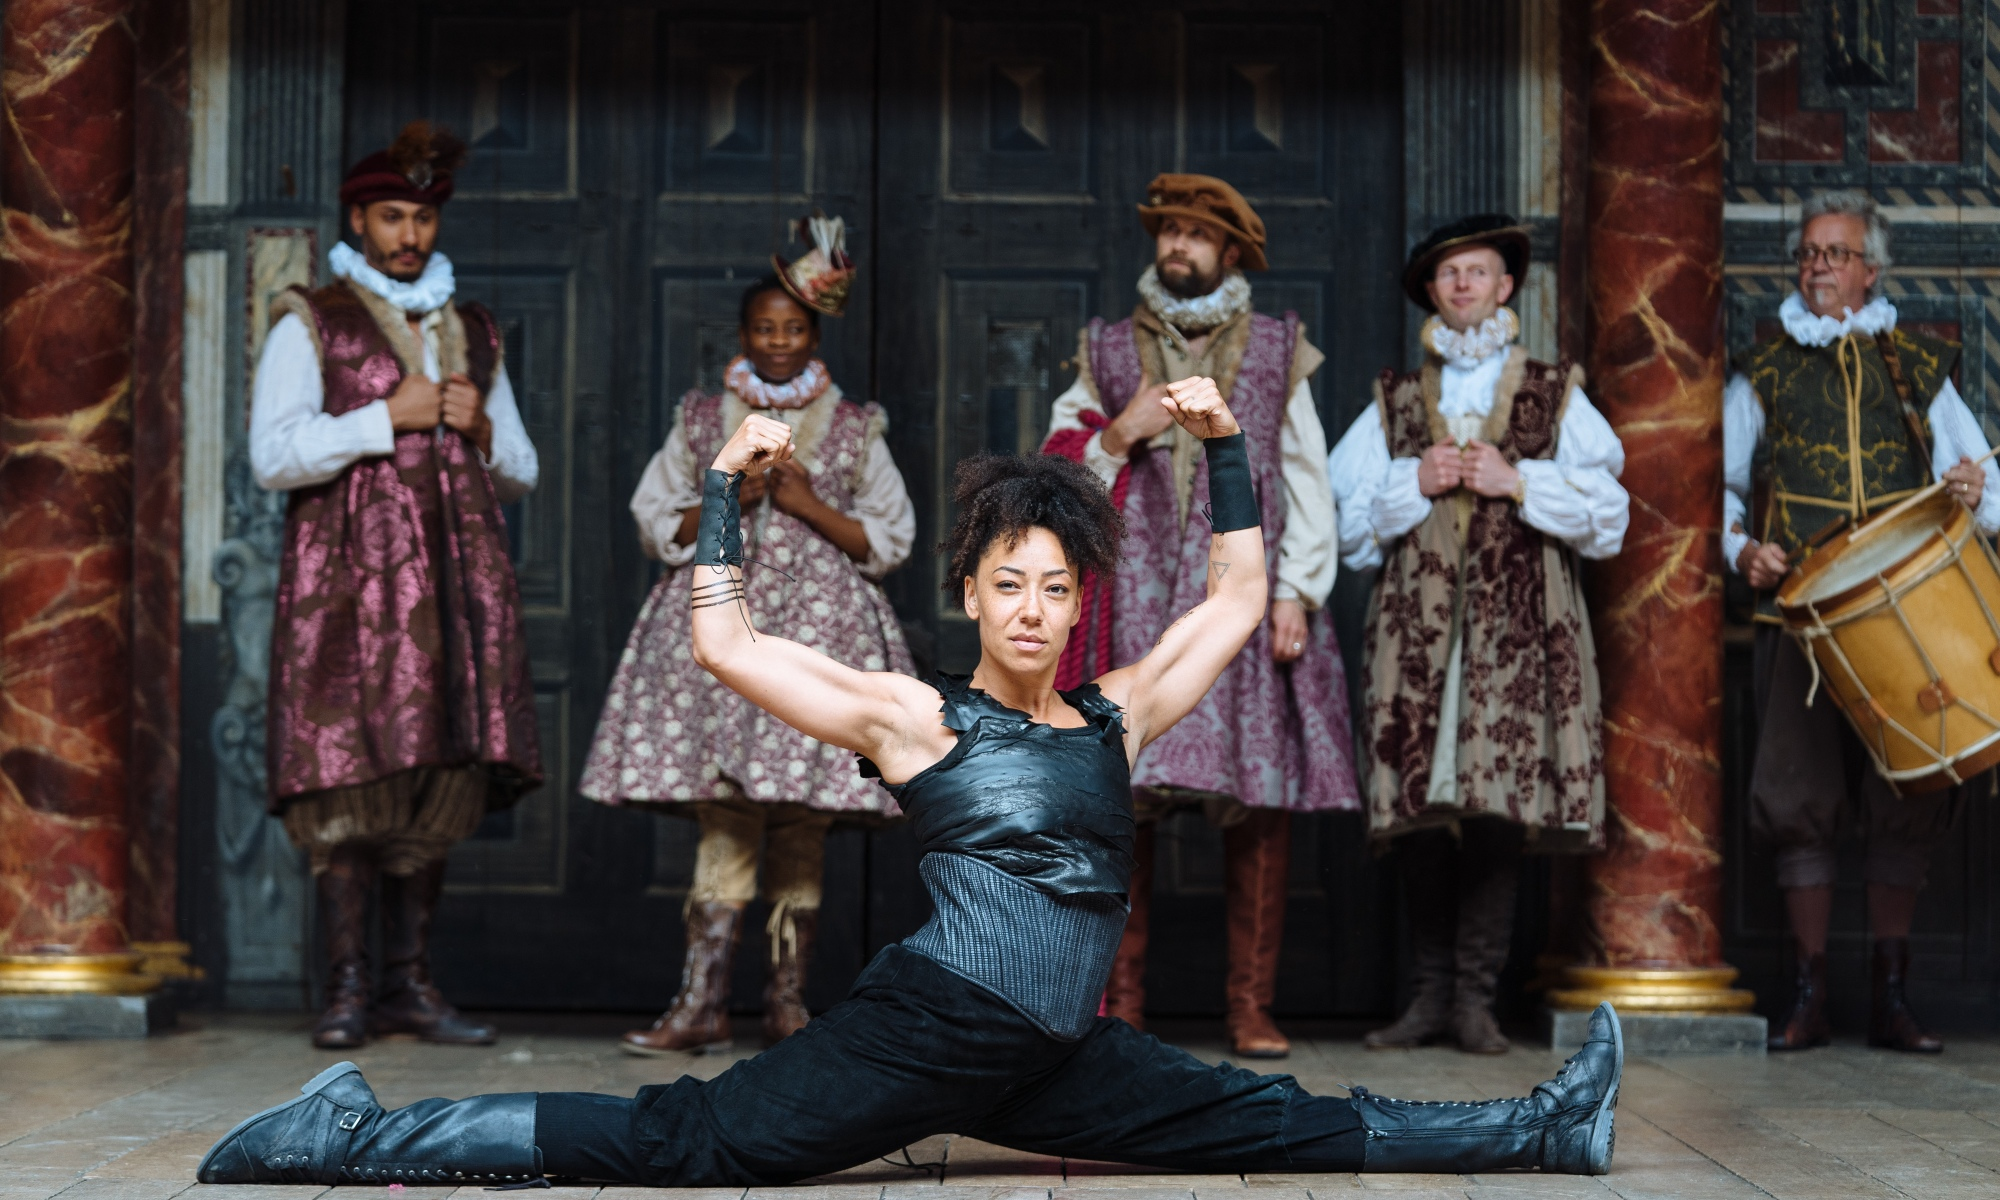 A women is doing the split whilst showing off her muscles. Behind them are five people (one of them holding a drum) in Shakespearean dress.